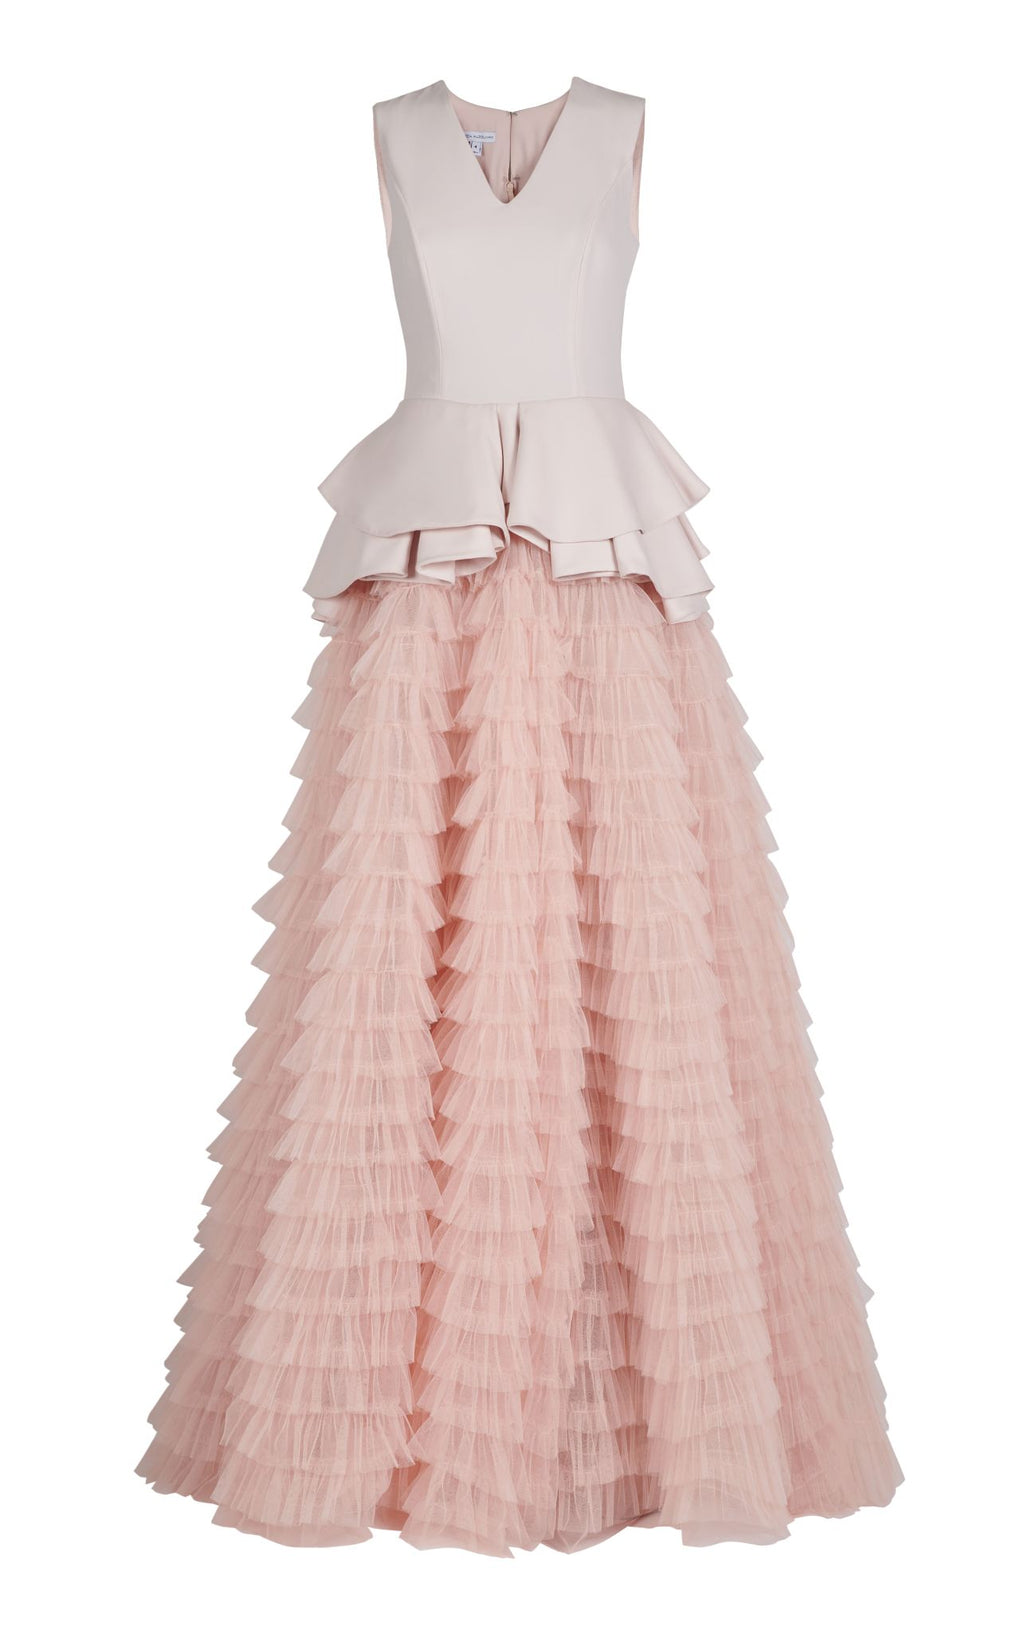 Pink crepe v neck ball gown with tulle skirt